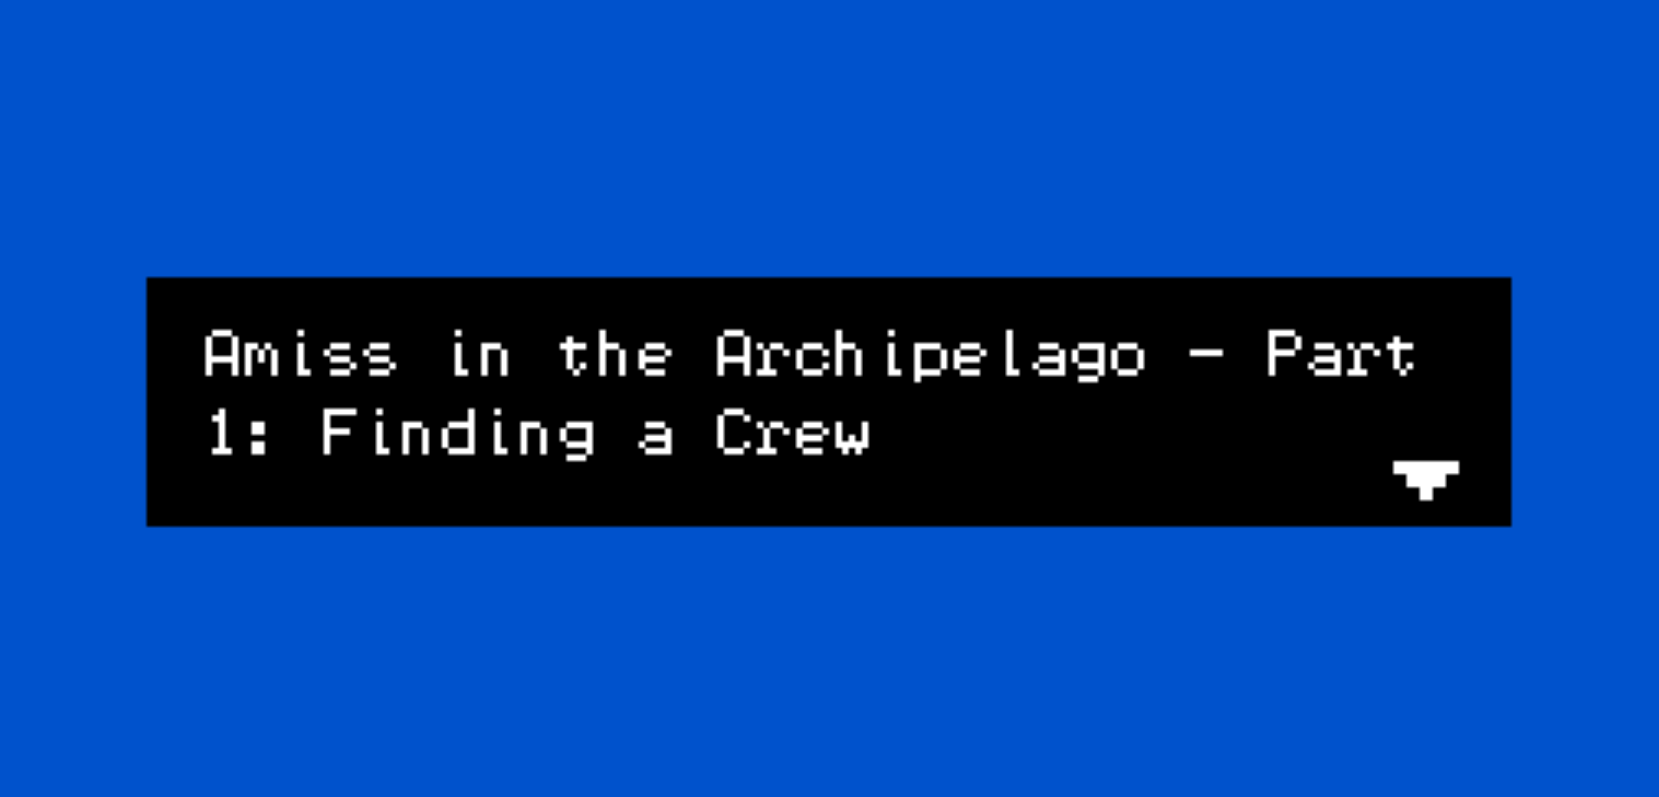 Amiss in the Archipelago - Part 1: Finding a Crew